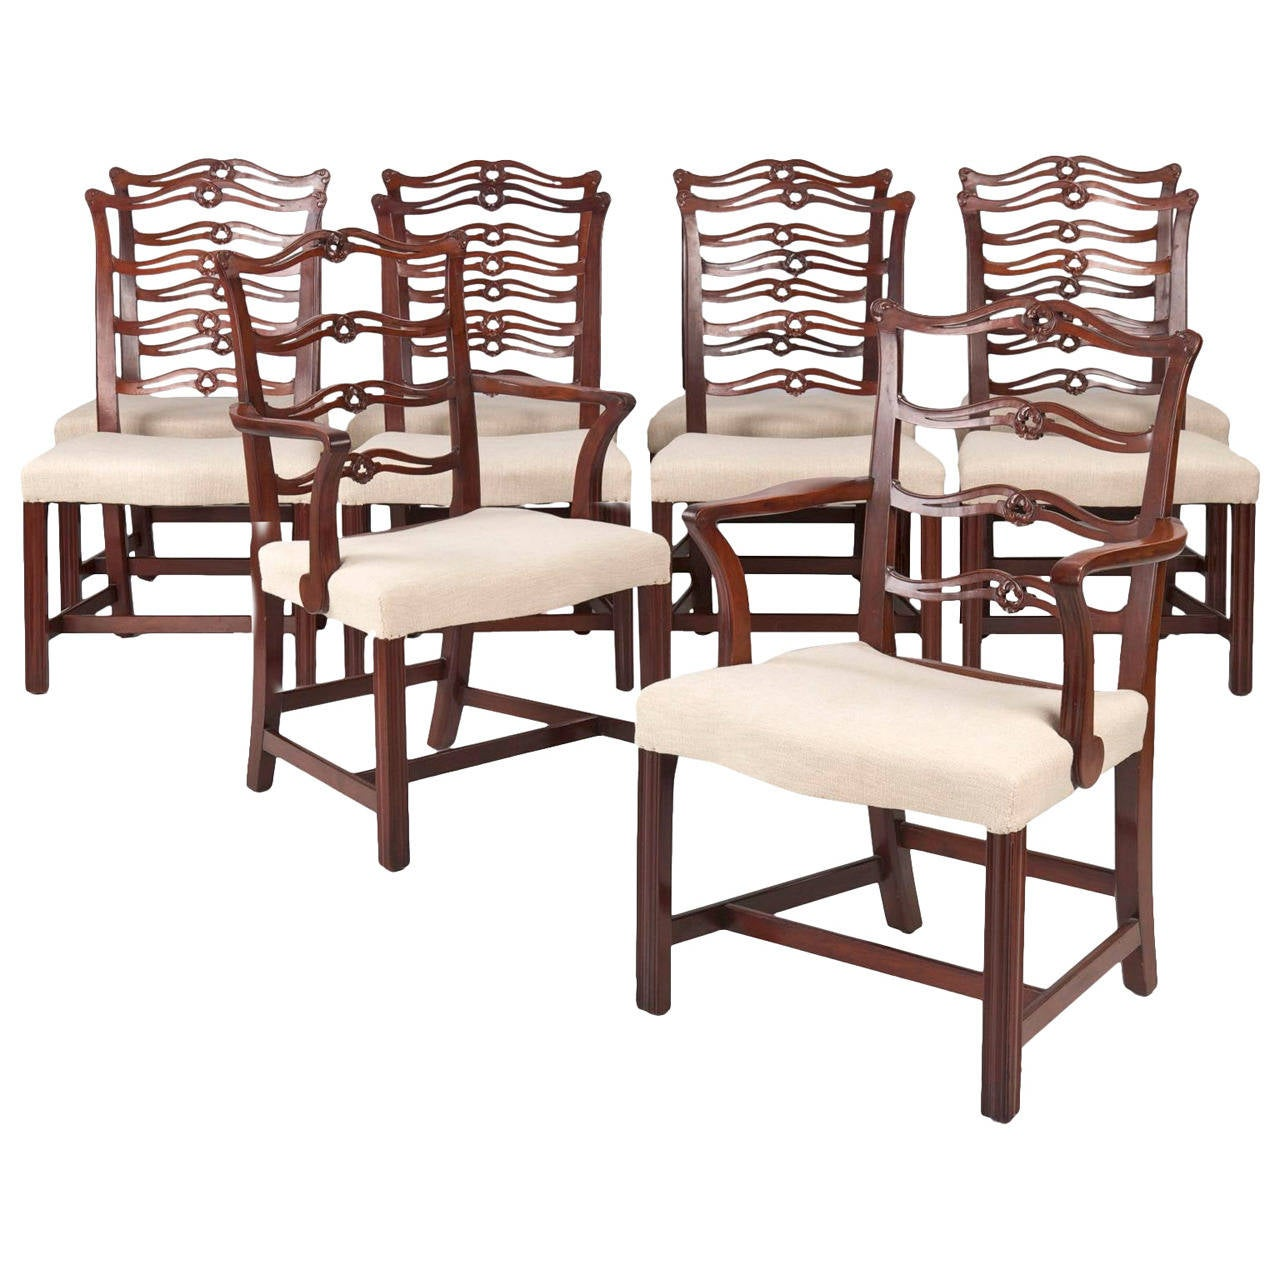 Chippendale Dining Room Chairs: Set Of Ten Chippendale Style Antique Mahogany Dining